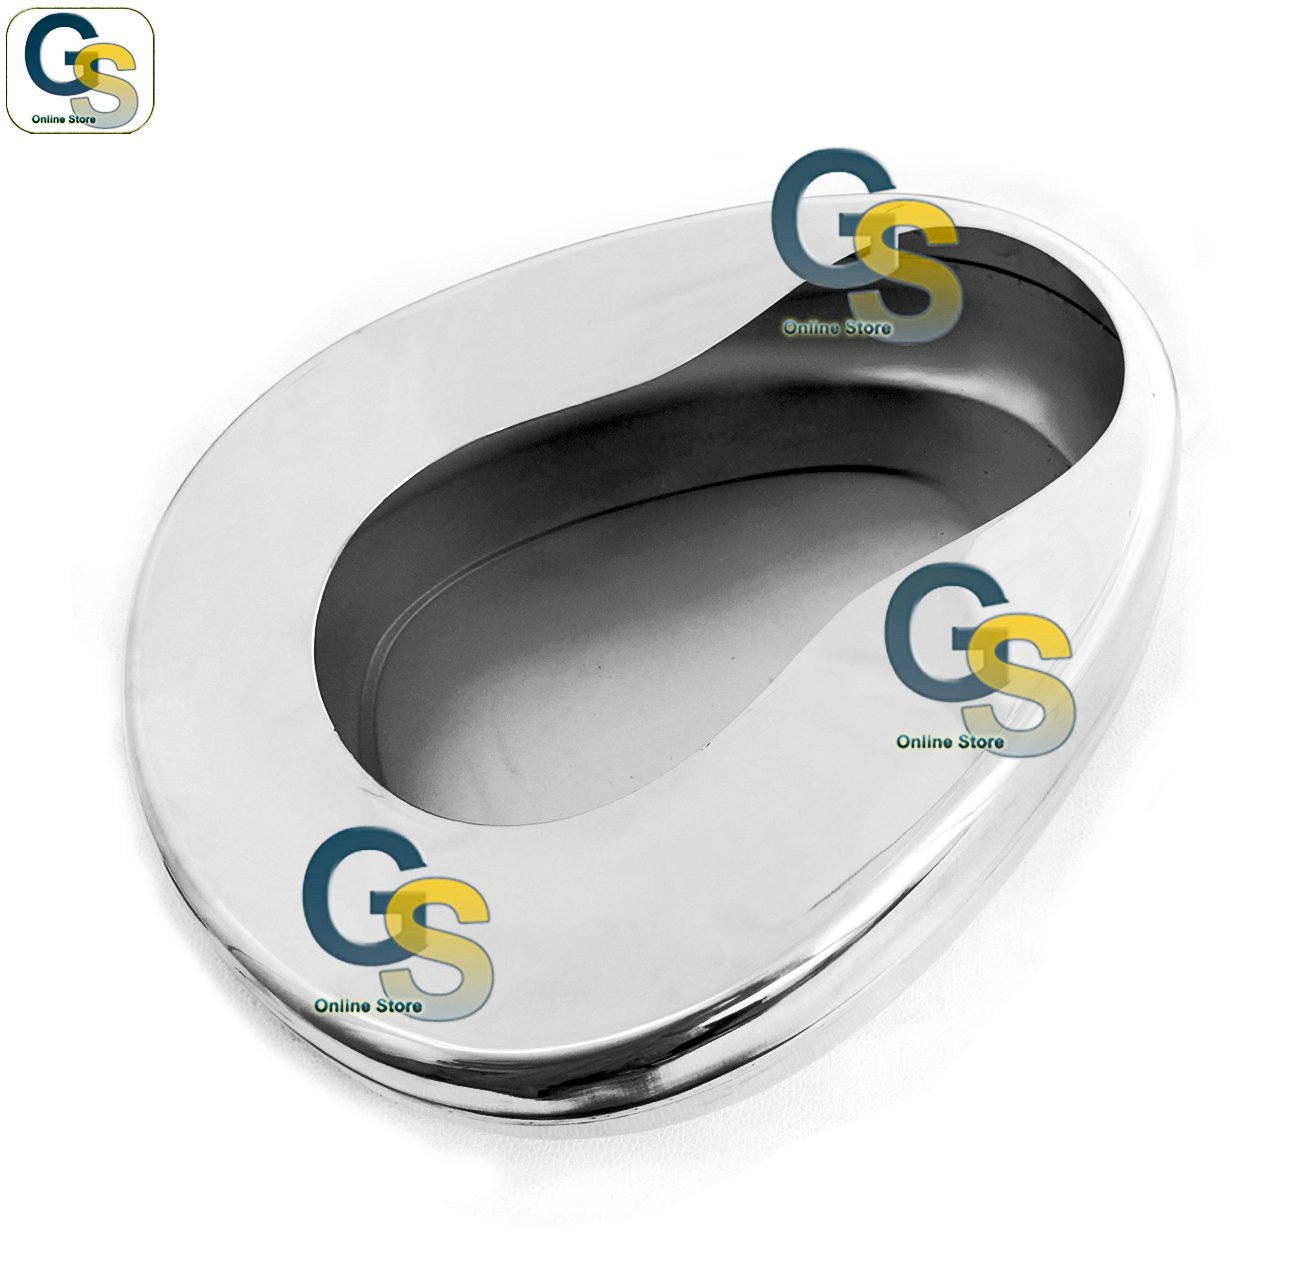 G.S STAINLESS STEEL BED PANS ADULT: 14'' X 11 3/8'' BEST QUALITY